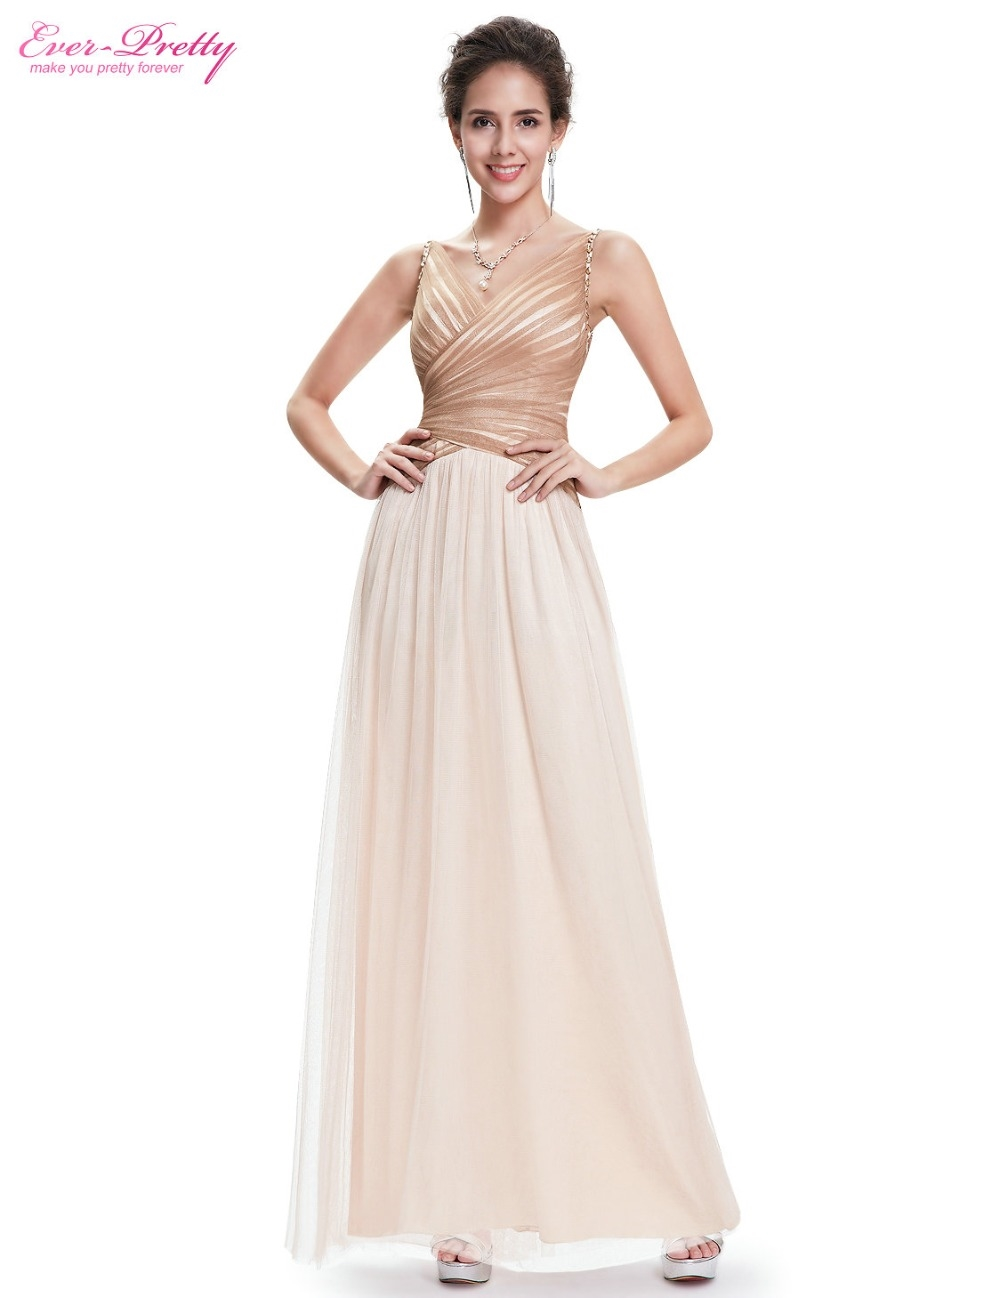 watch more here clearance sale prom dresses ever pretty